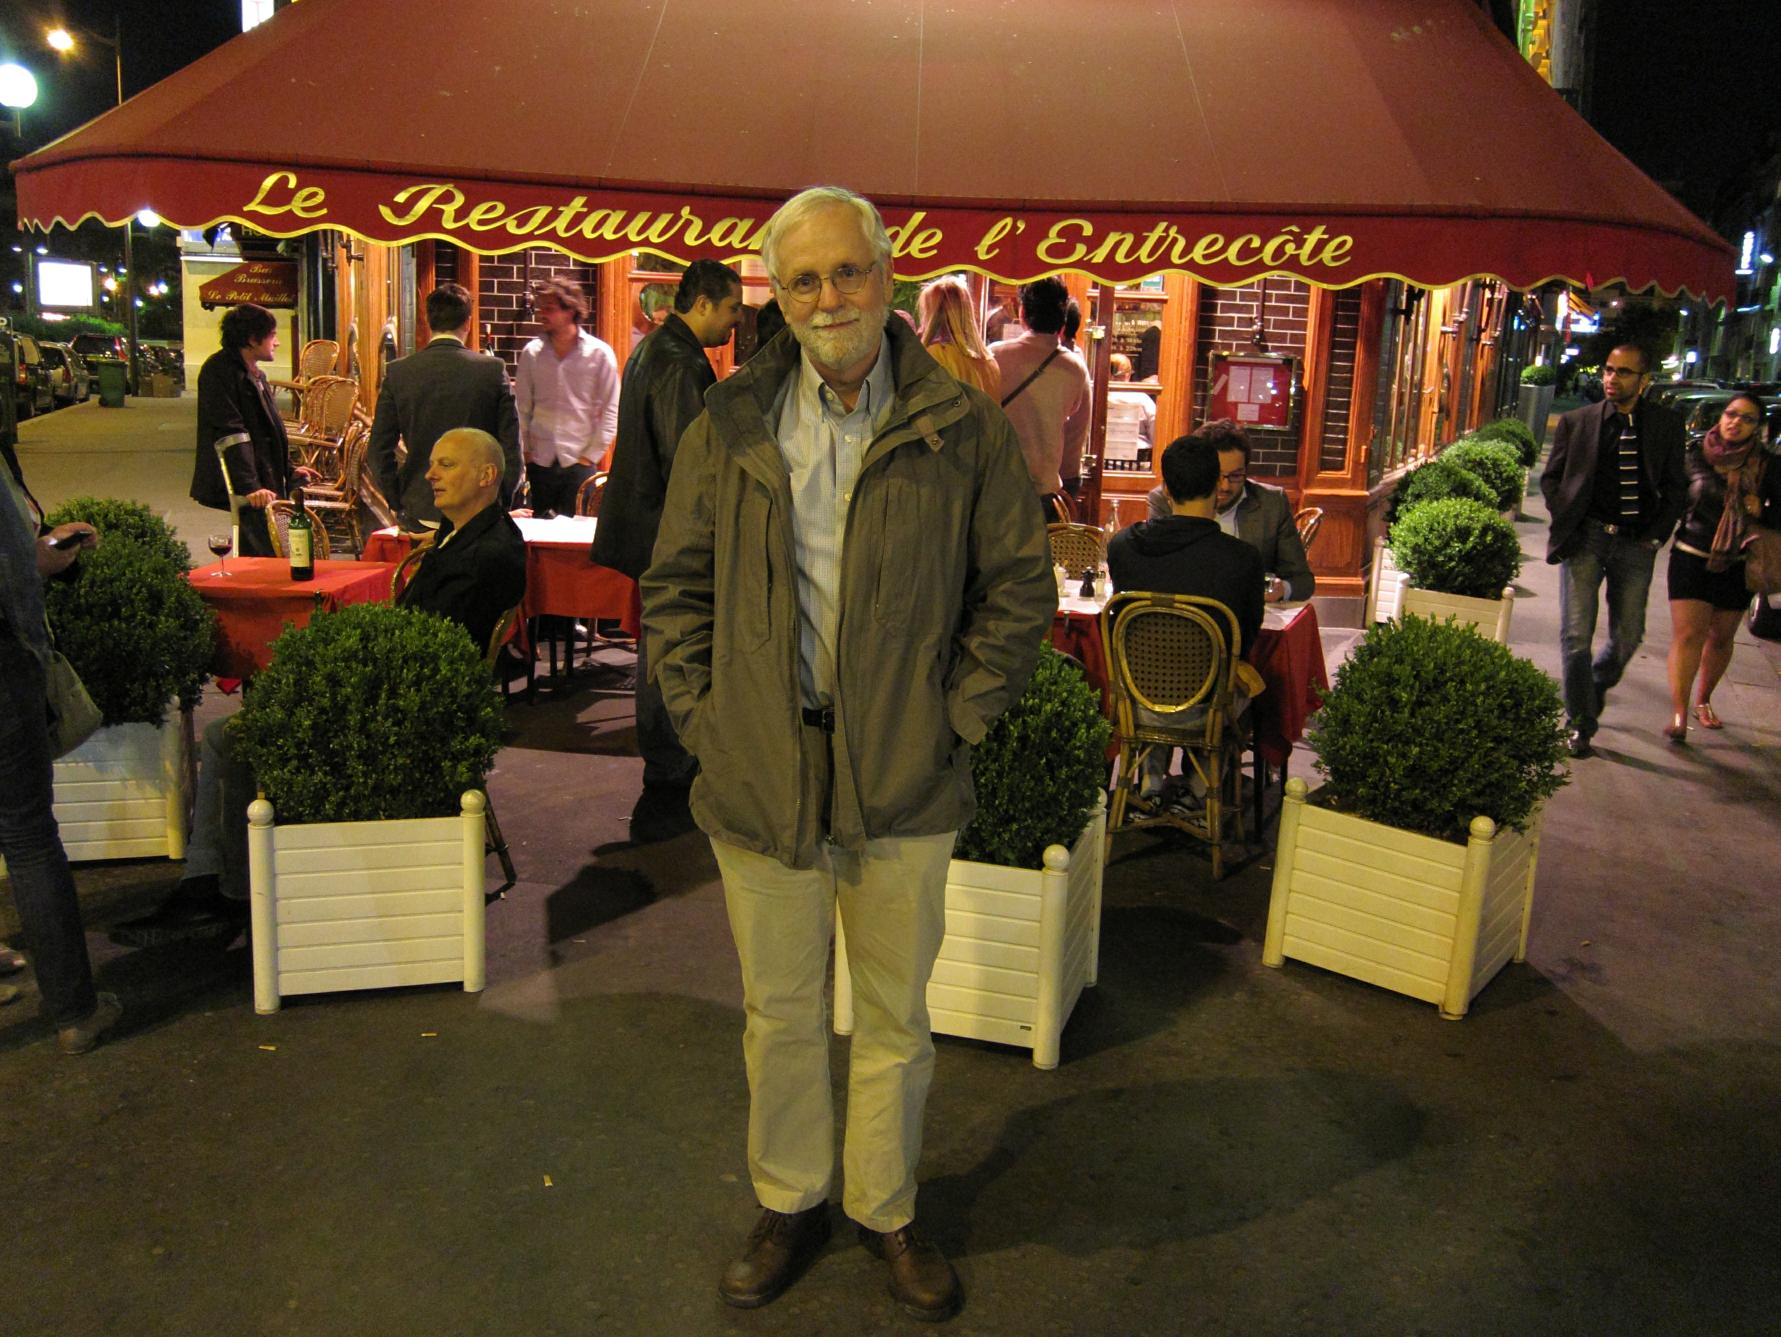 Spring in paris my sojourns in france 2010 2015 page 7 - Le relais de l entrecote porte maillot ...